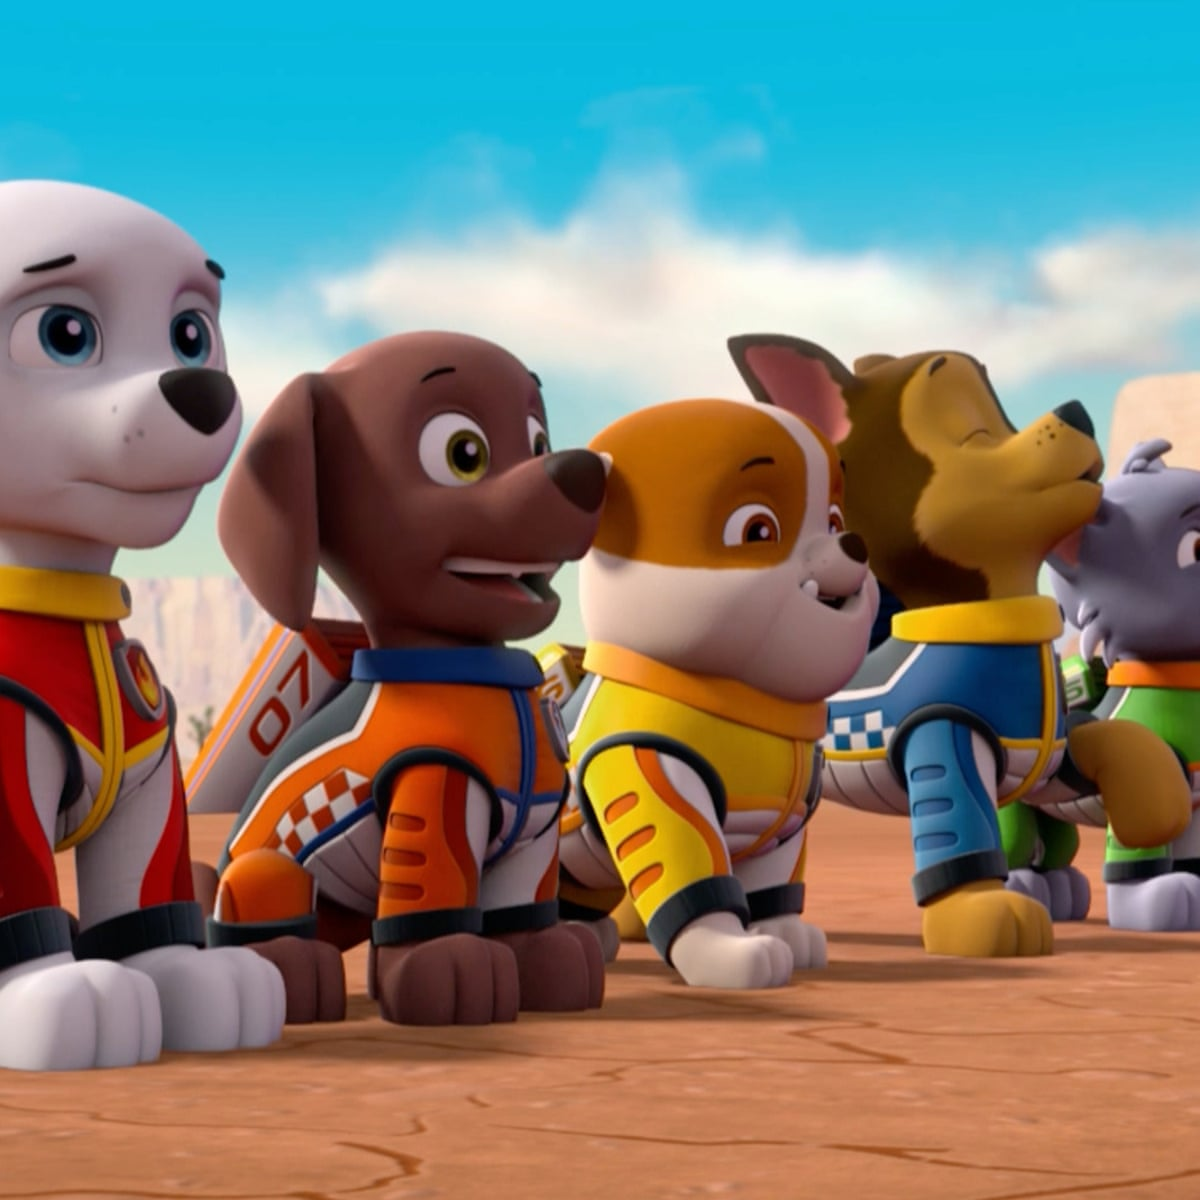 Paw Patrol Ready Race Rescue Review 48 Minutes In The Pits Film The Guardian